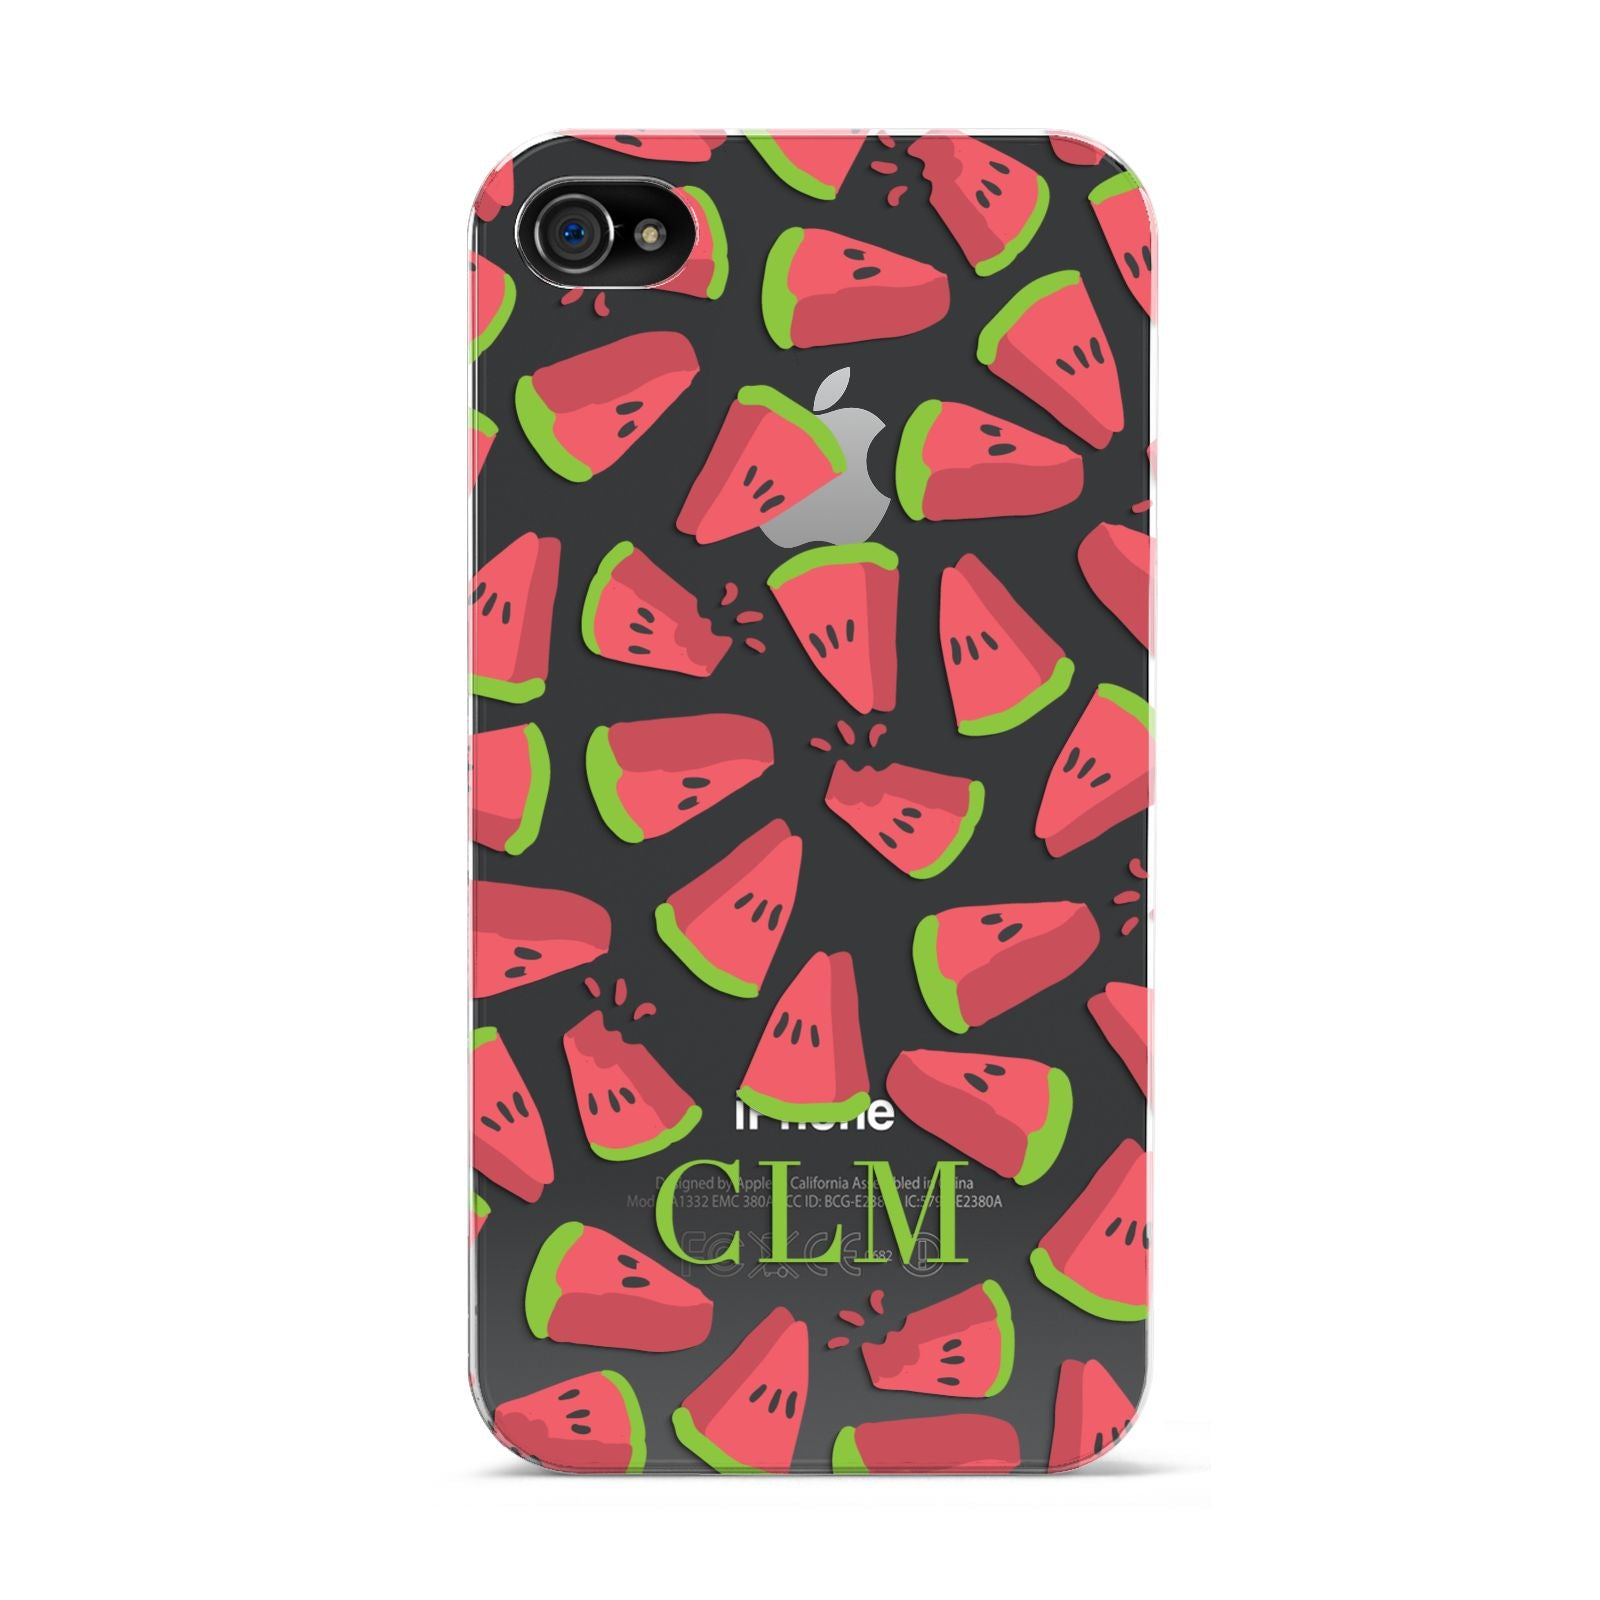 Personalised Watermelon Monogram Apple iPhone 4s Case